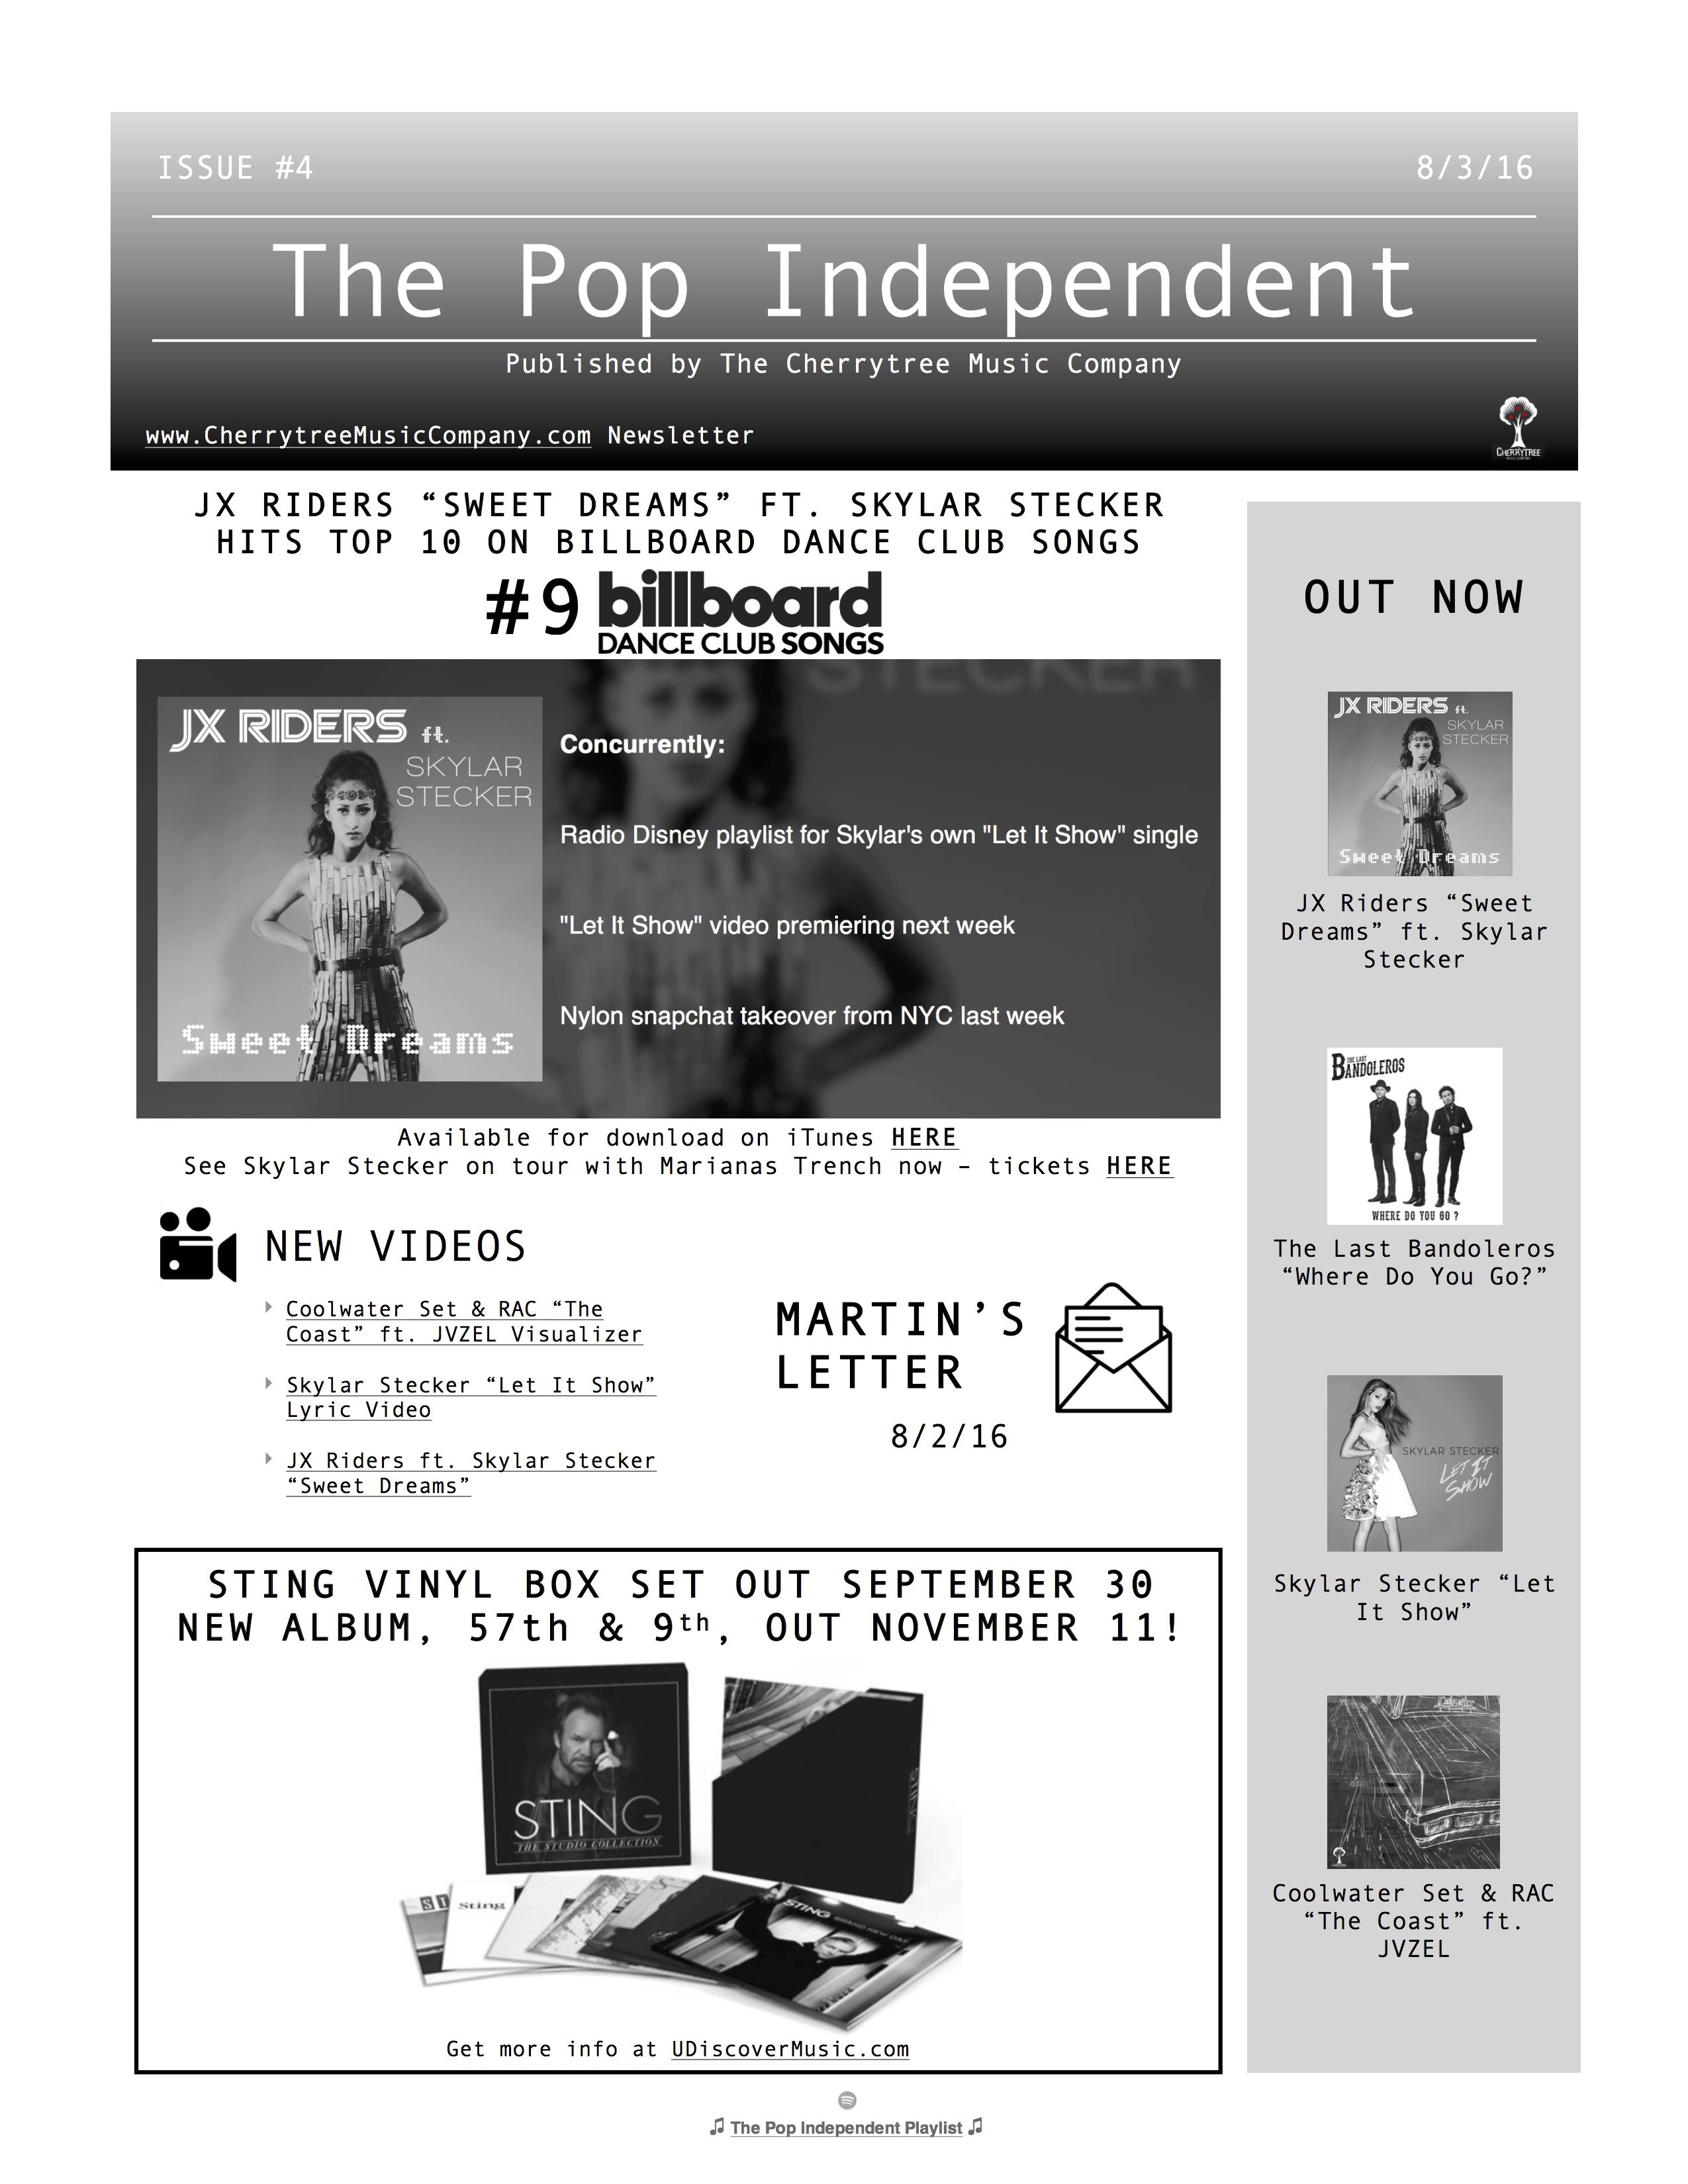 The Pop Independent, issue 4